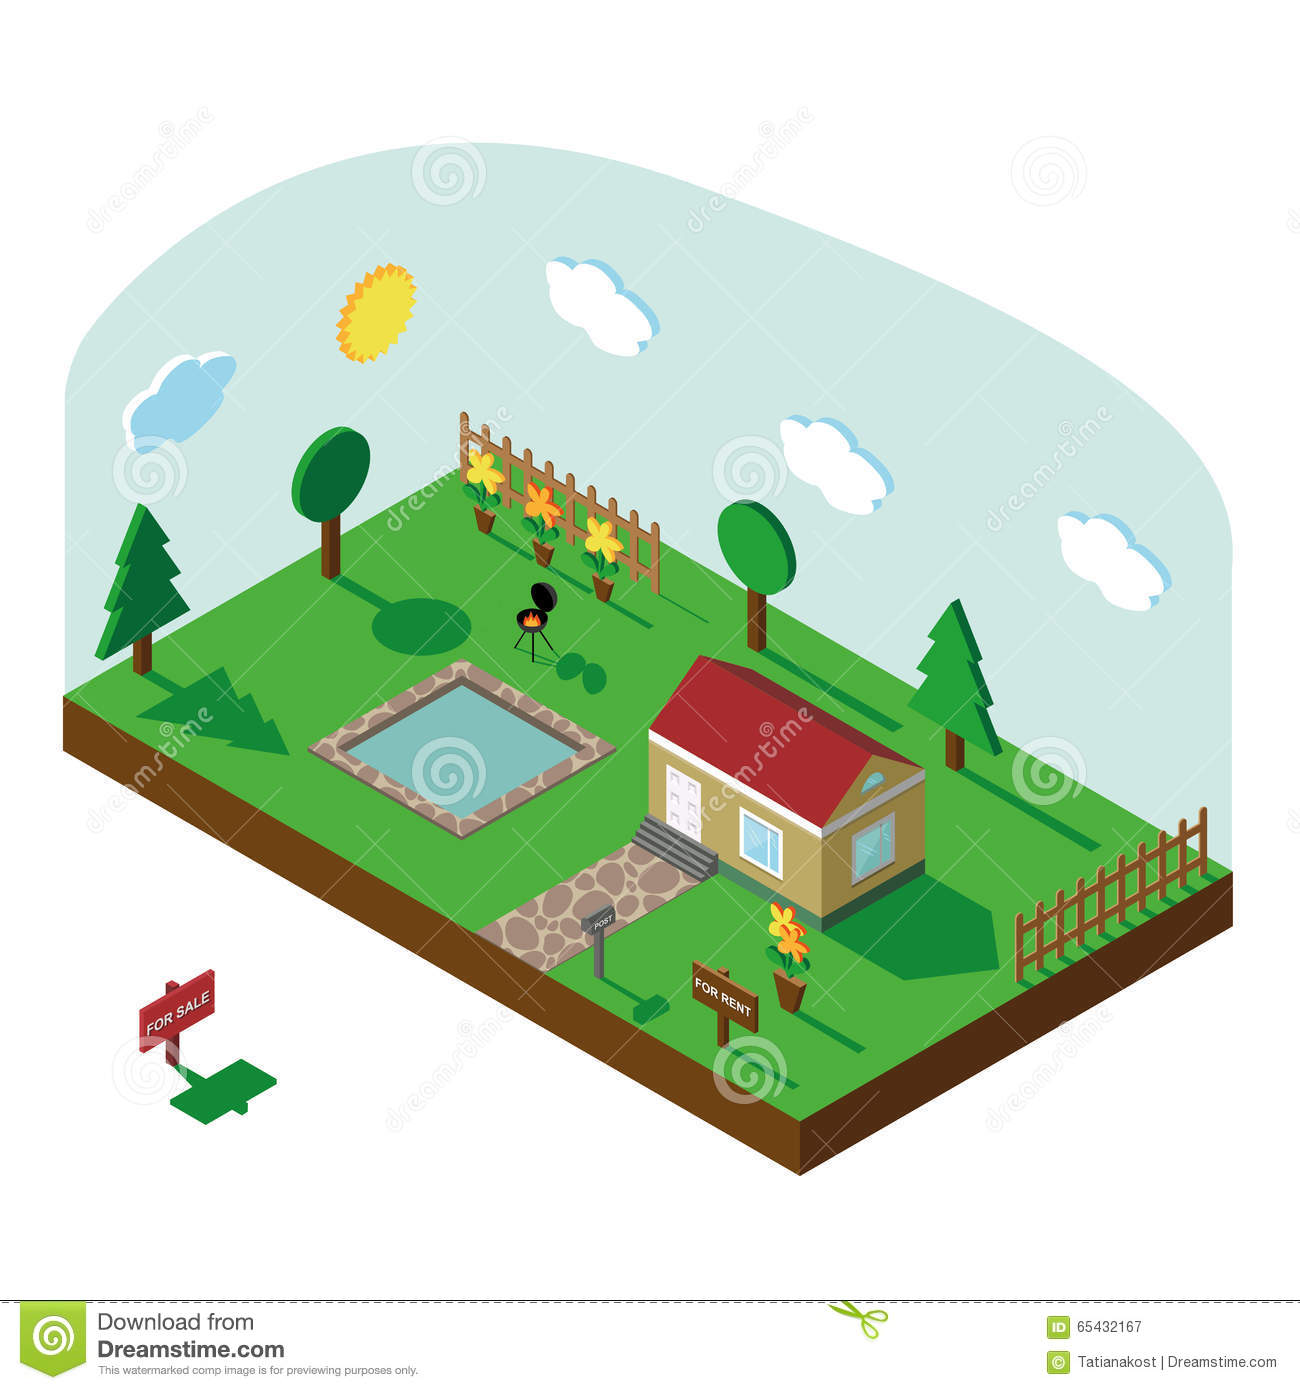 More similar stock images of 3d landscape with fall tree - Isometric House 3d Village Landscape With Sky Royalty Free Stock Photography